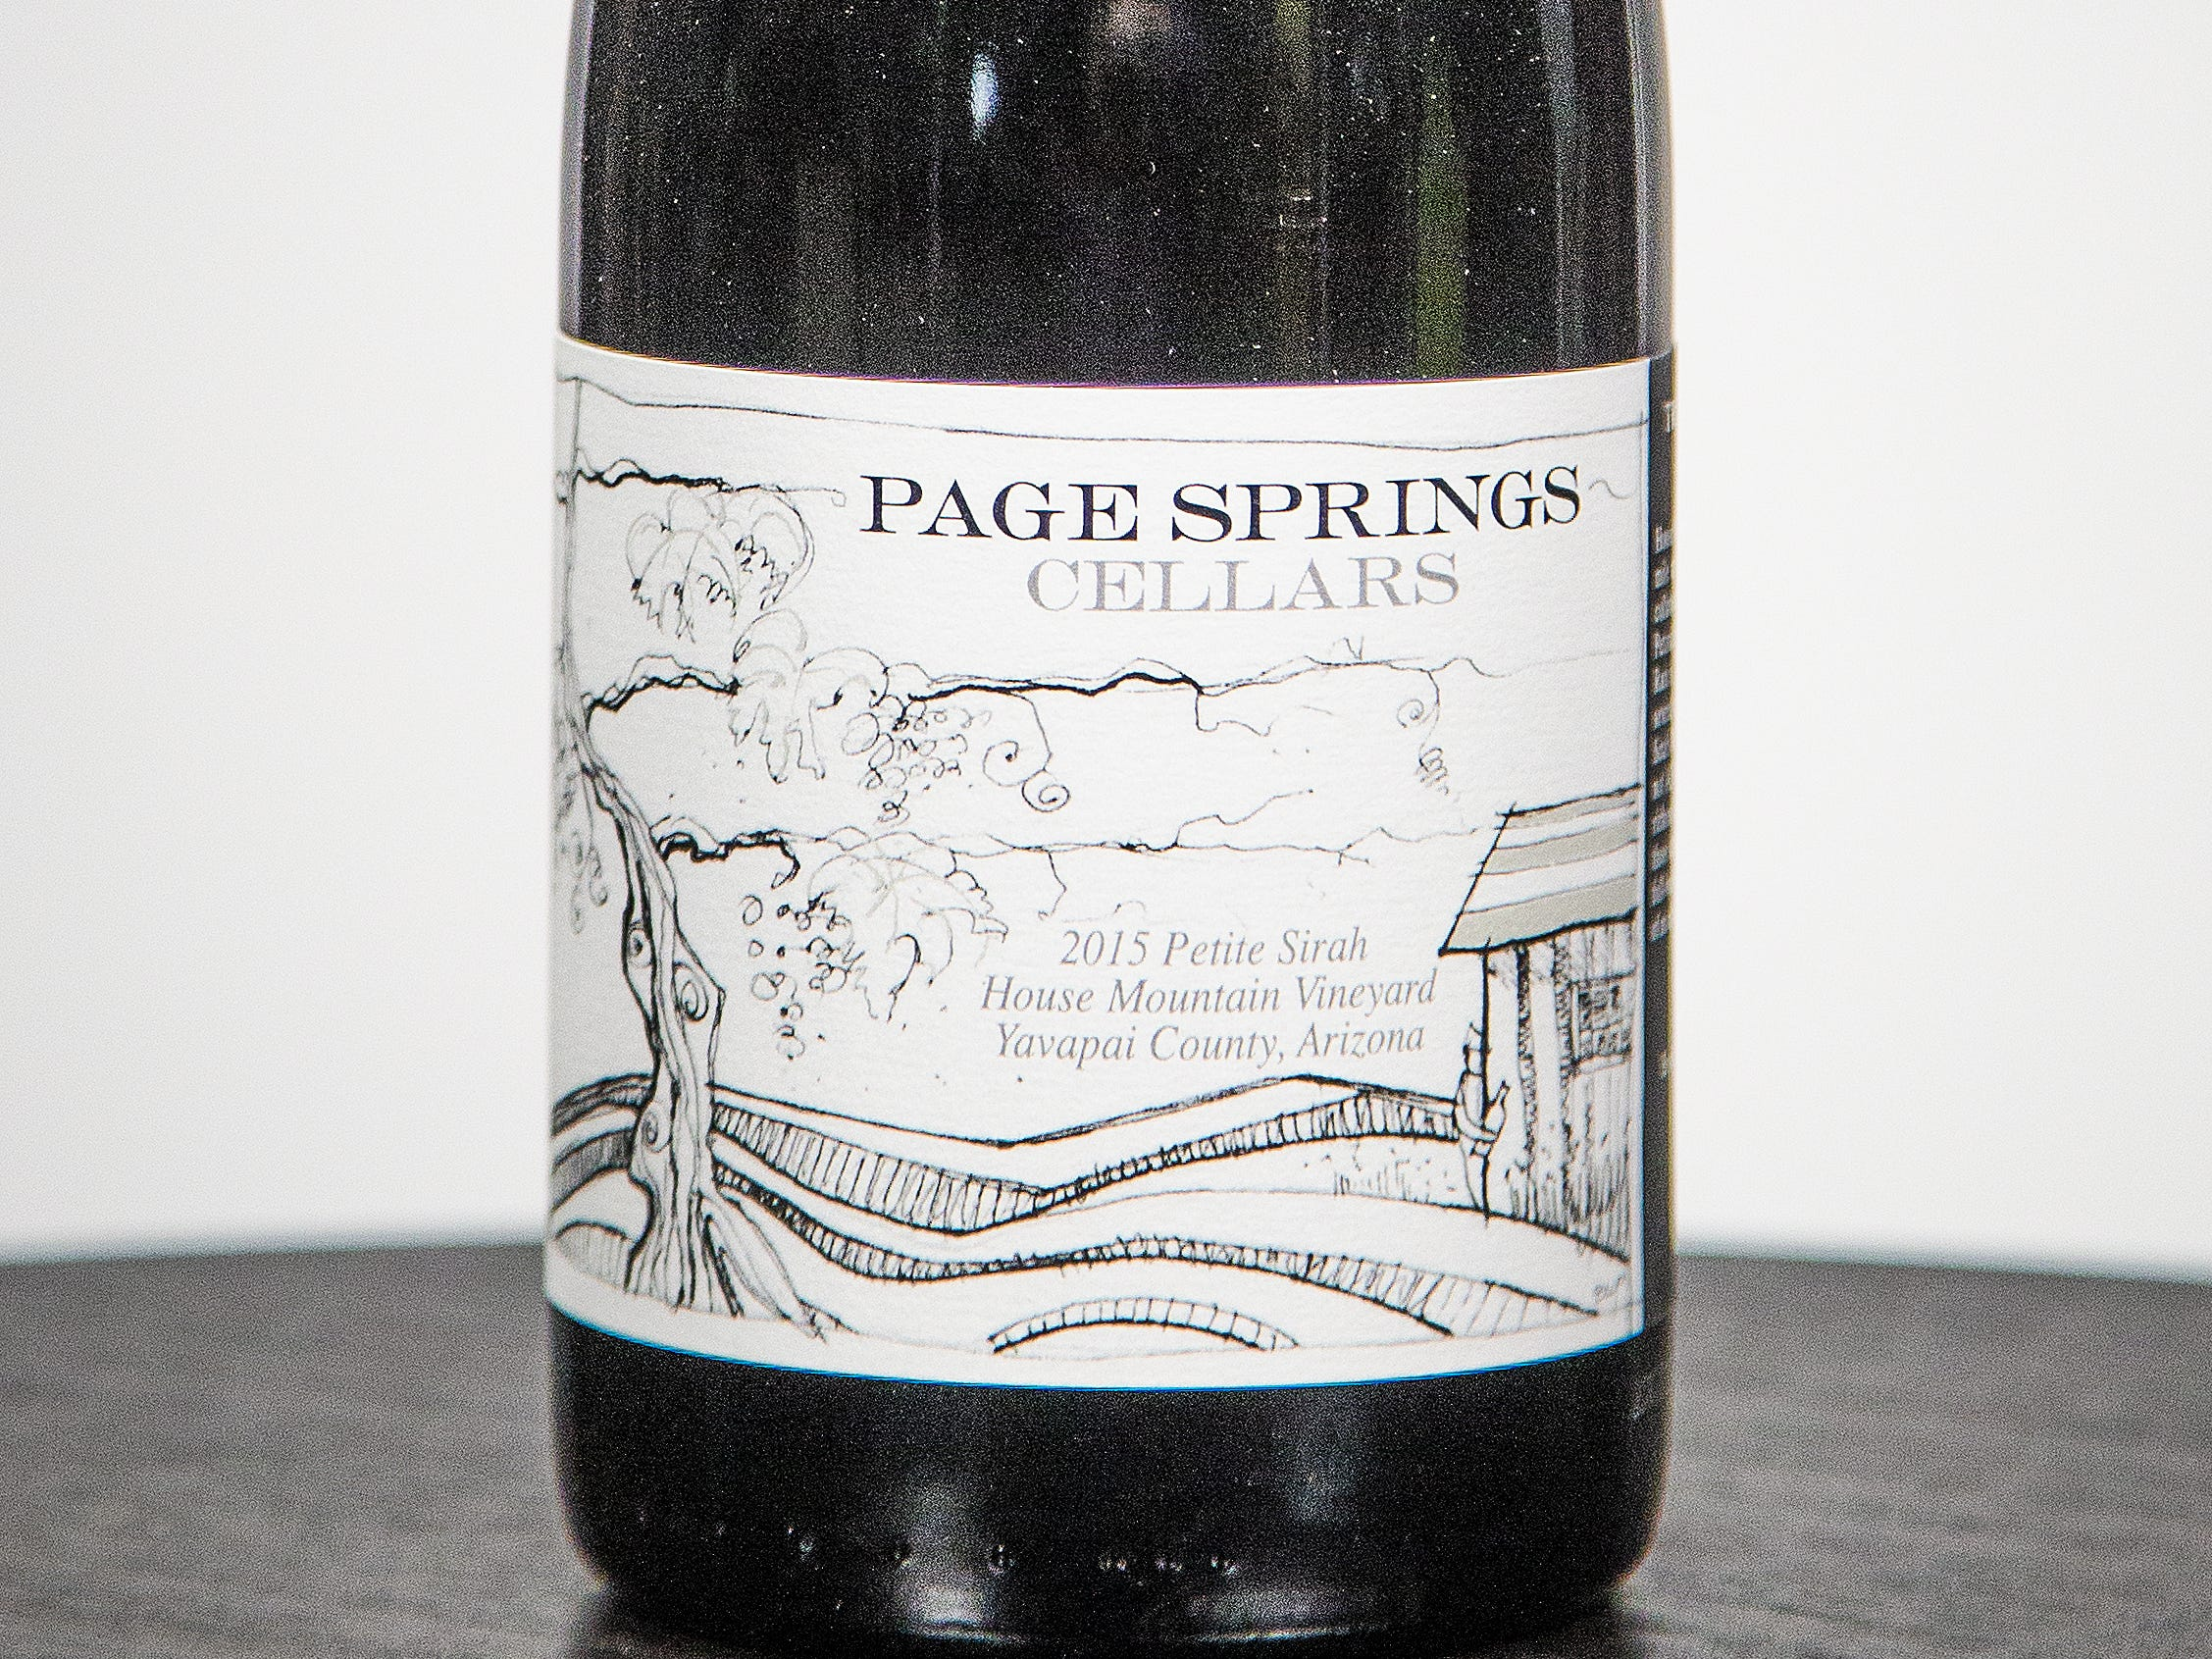 Best Petite Sirah: Page Springs Cellars 2015 House Mountain Vineyard Petite Sirah.